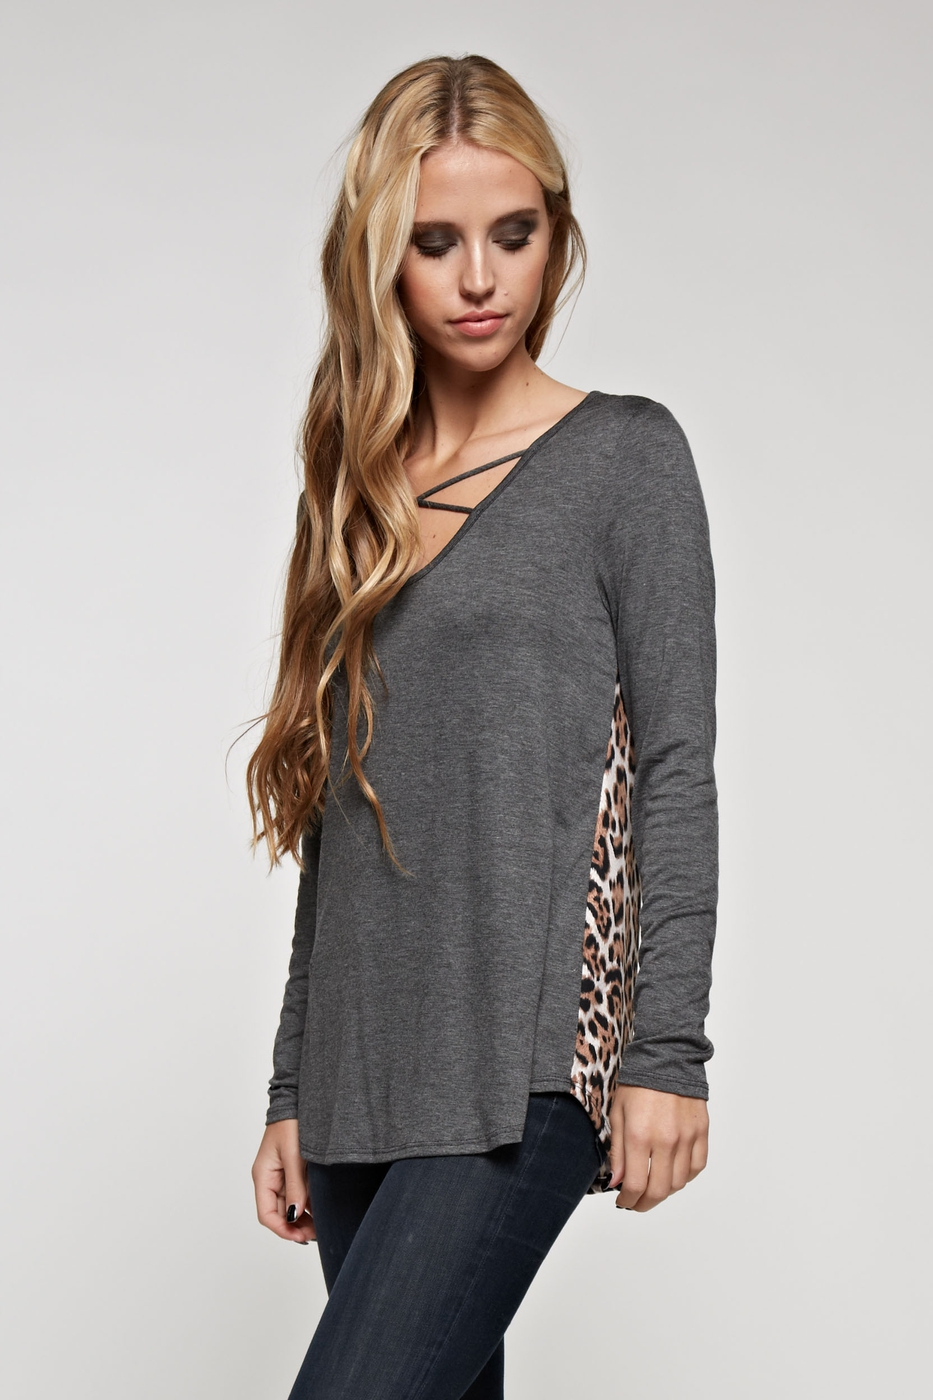 CRISSCROSS ANIMAL PRINT TOP - orangeshine.com